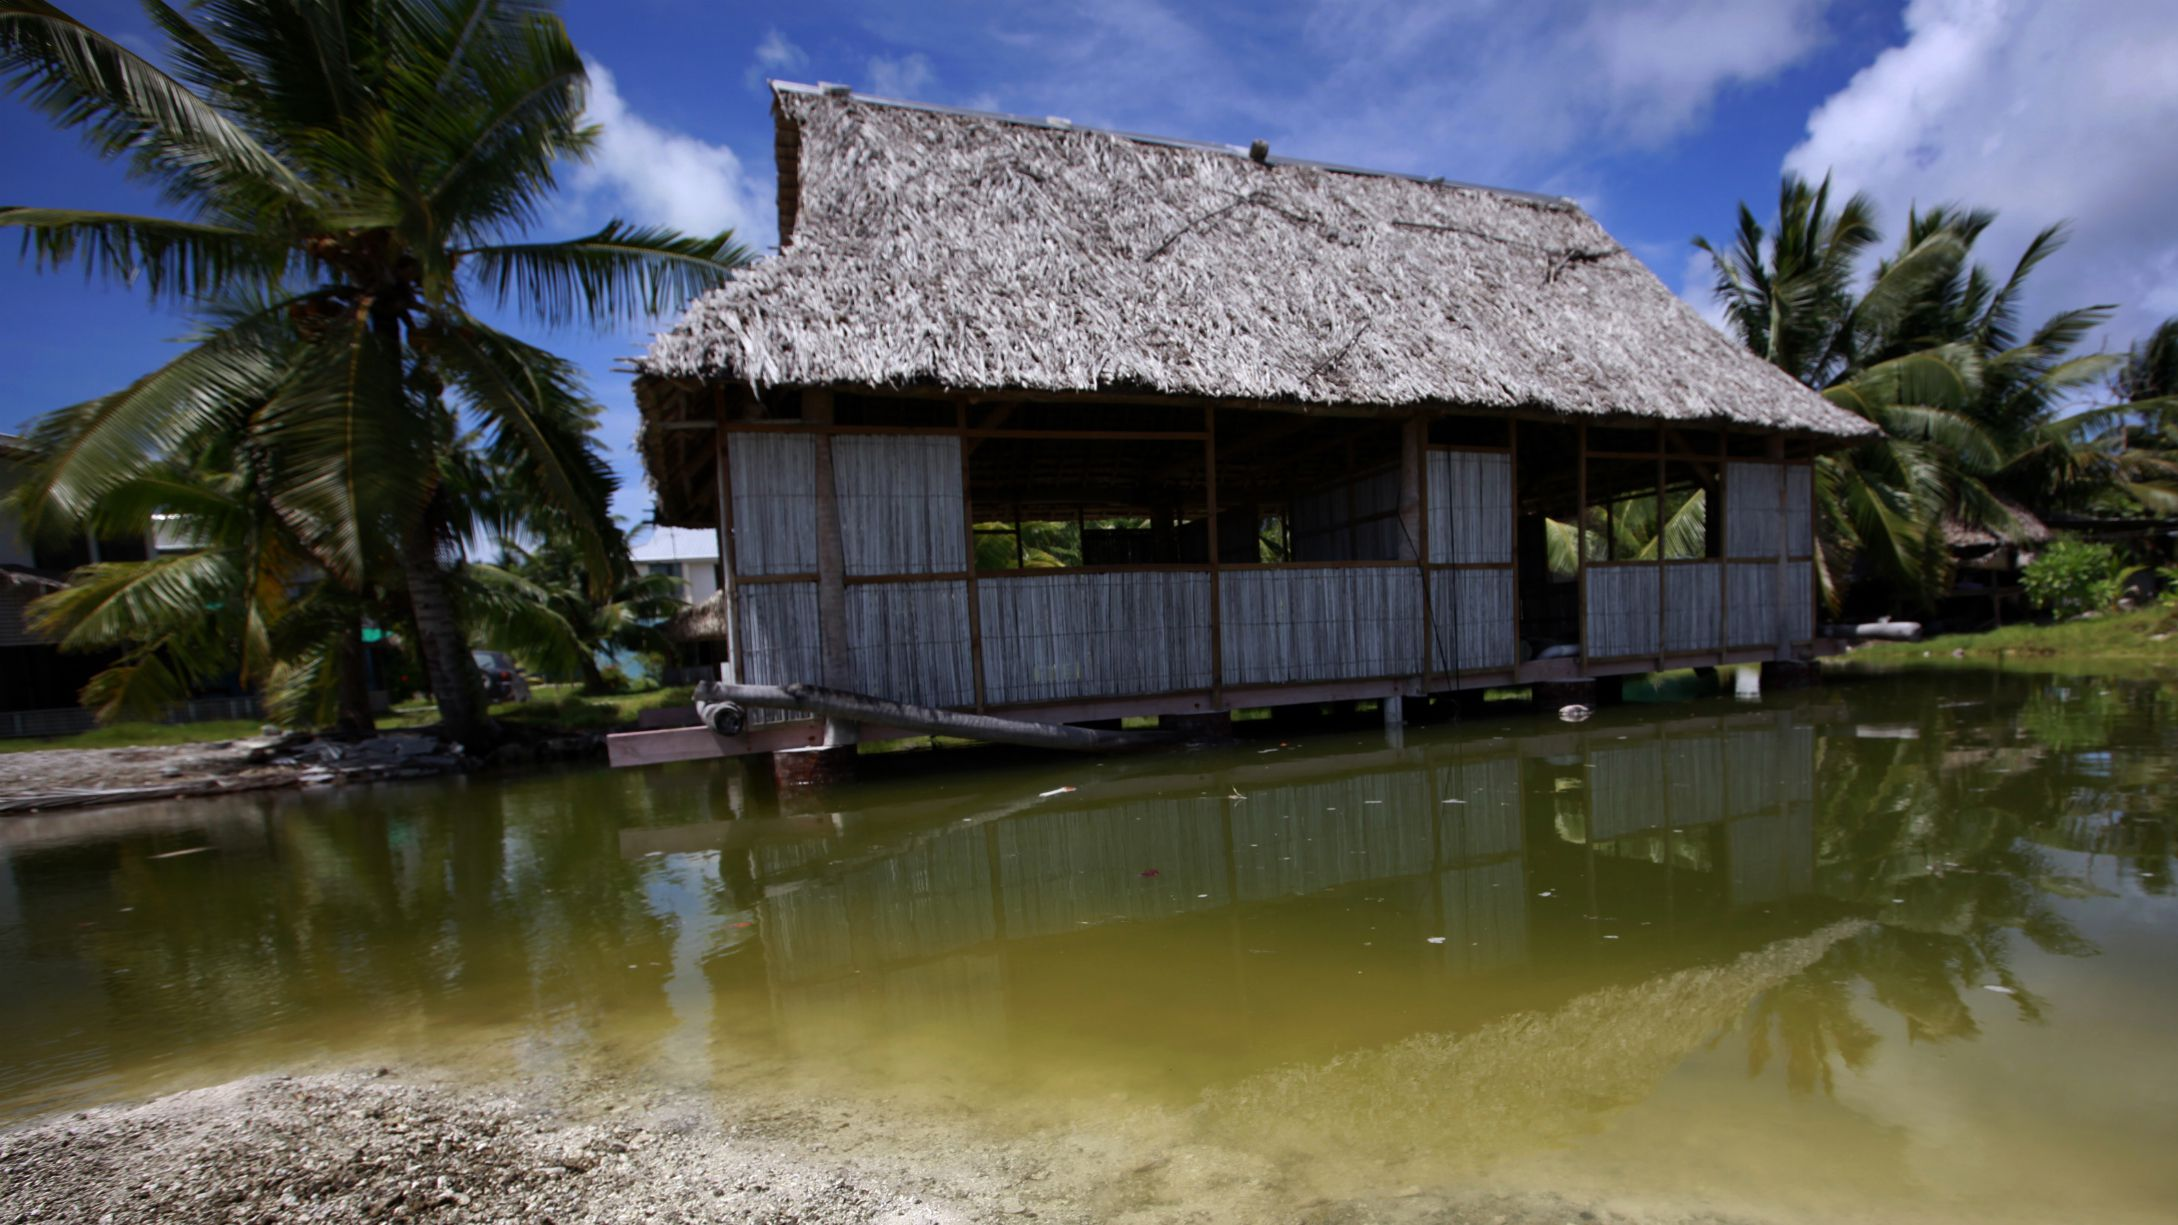 An abandoned house that is affected by seawater during high-tides stands next to a small lagoon near the village of Tangintebu on South Tarawa in the central Pacific island nation of Kiribati May 25, 2013. Kiribati consists of a chain of 33 atolls and islands that stand just metres above sea level, spread over a huge expanse of otherwise empty ocean. With surrounding sea levels rising, Kiribati President Anote Tong has predicted his country will likely become uninhabitable in 30-60 years because of inundation and contamination of its freshwater supplies. Picture taken May 25, 2013. REUTERS/David Gray